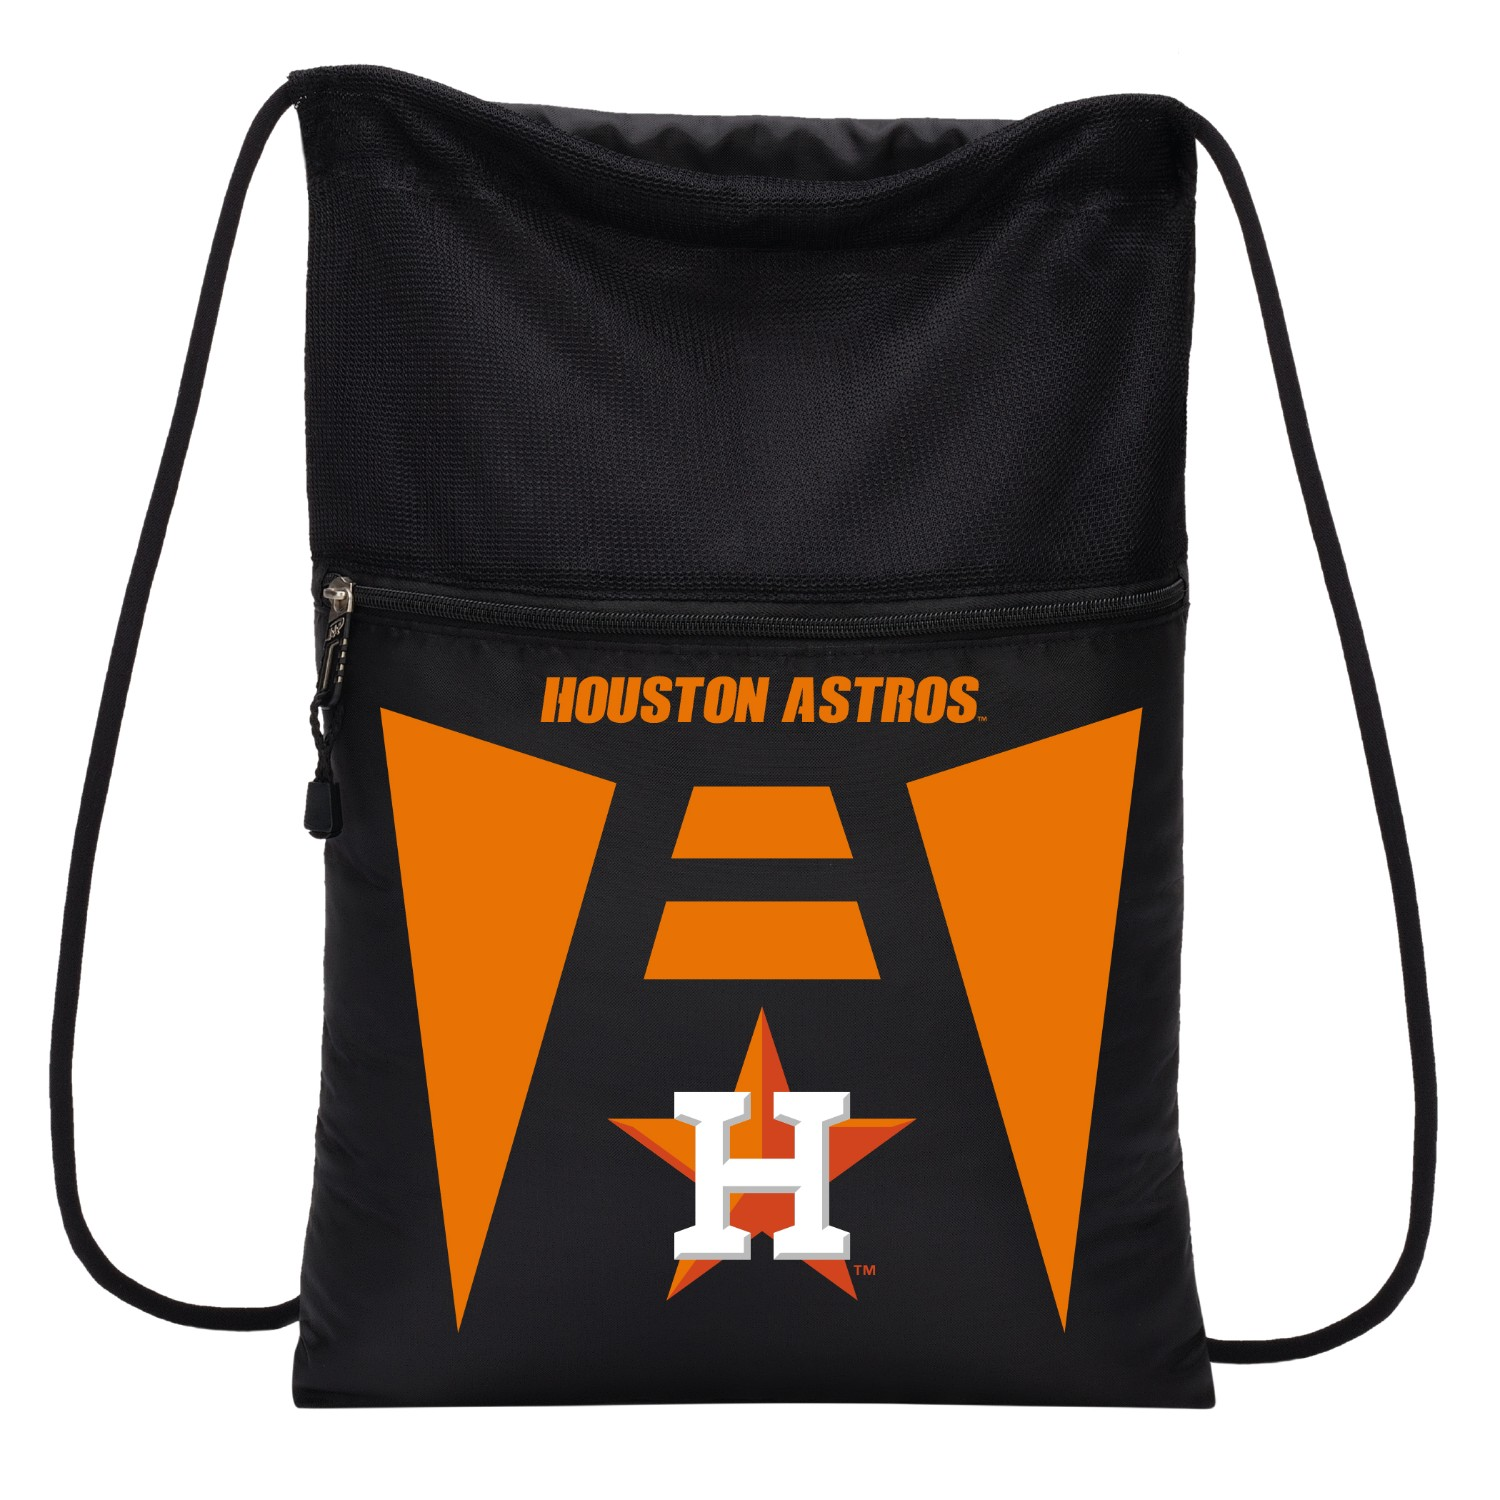 Houston Astros Team Tech Backsack